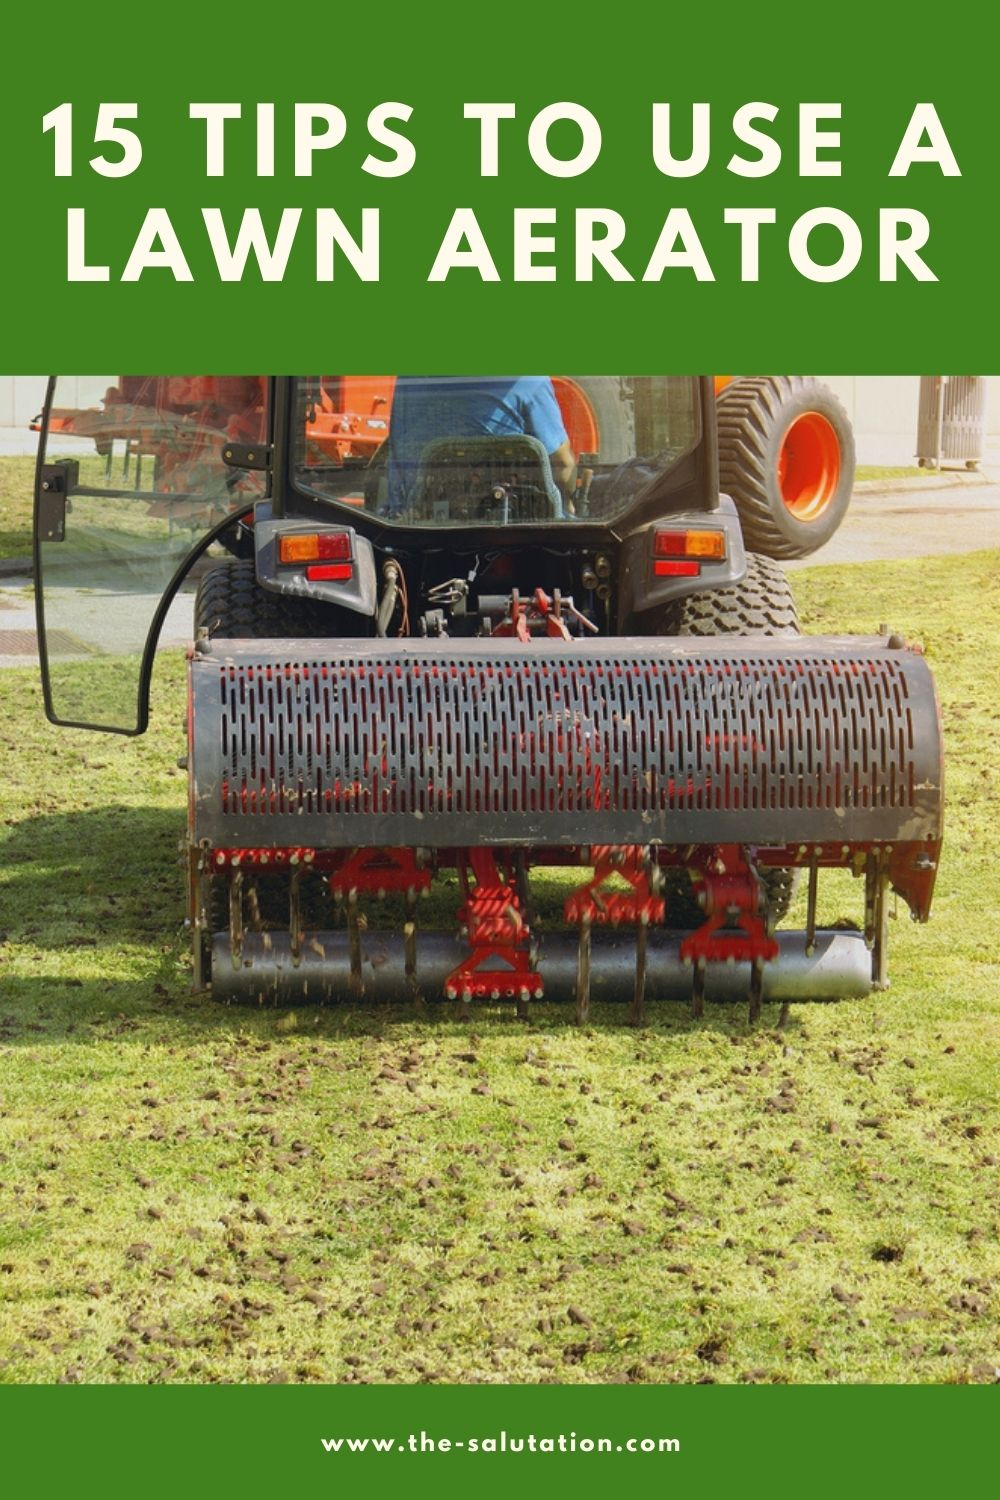 15 Tips to Use a Lawn Aerator 1